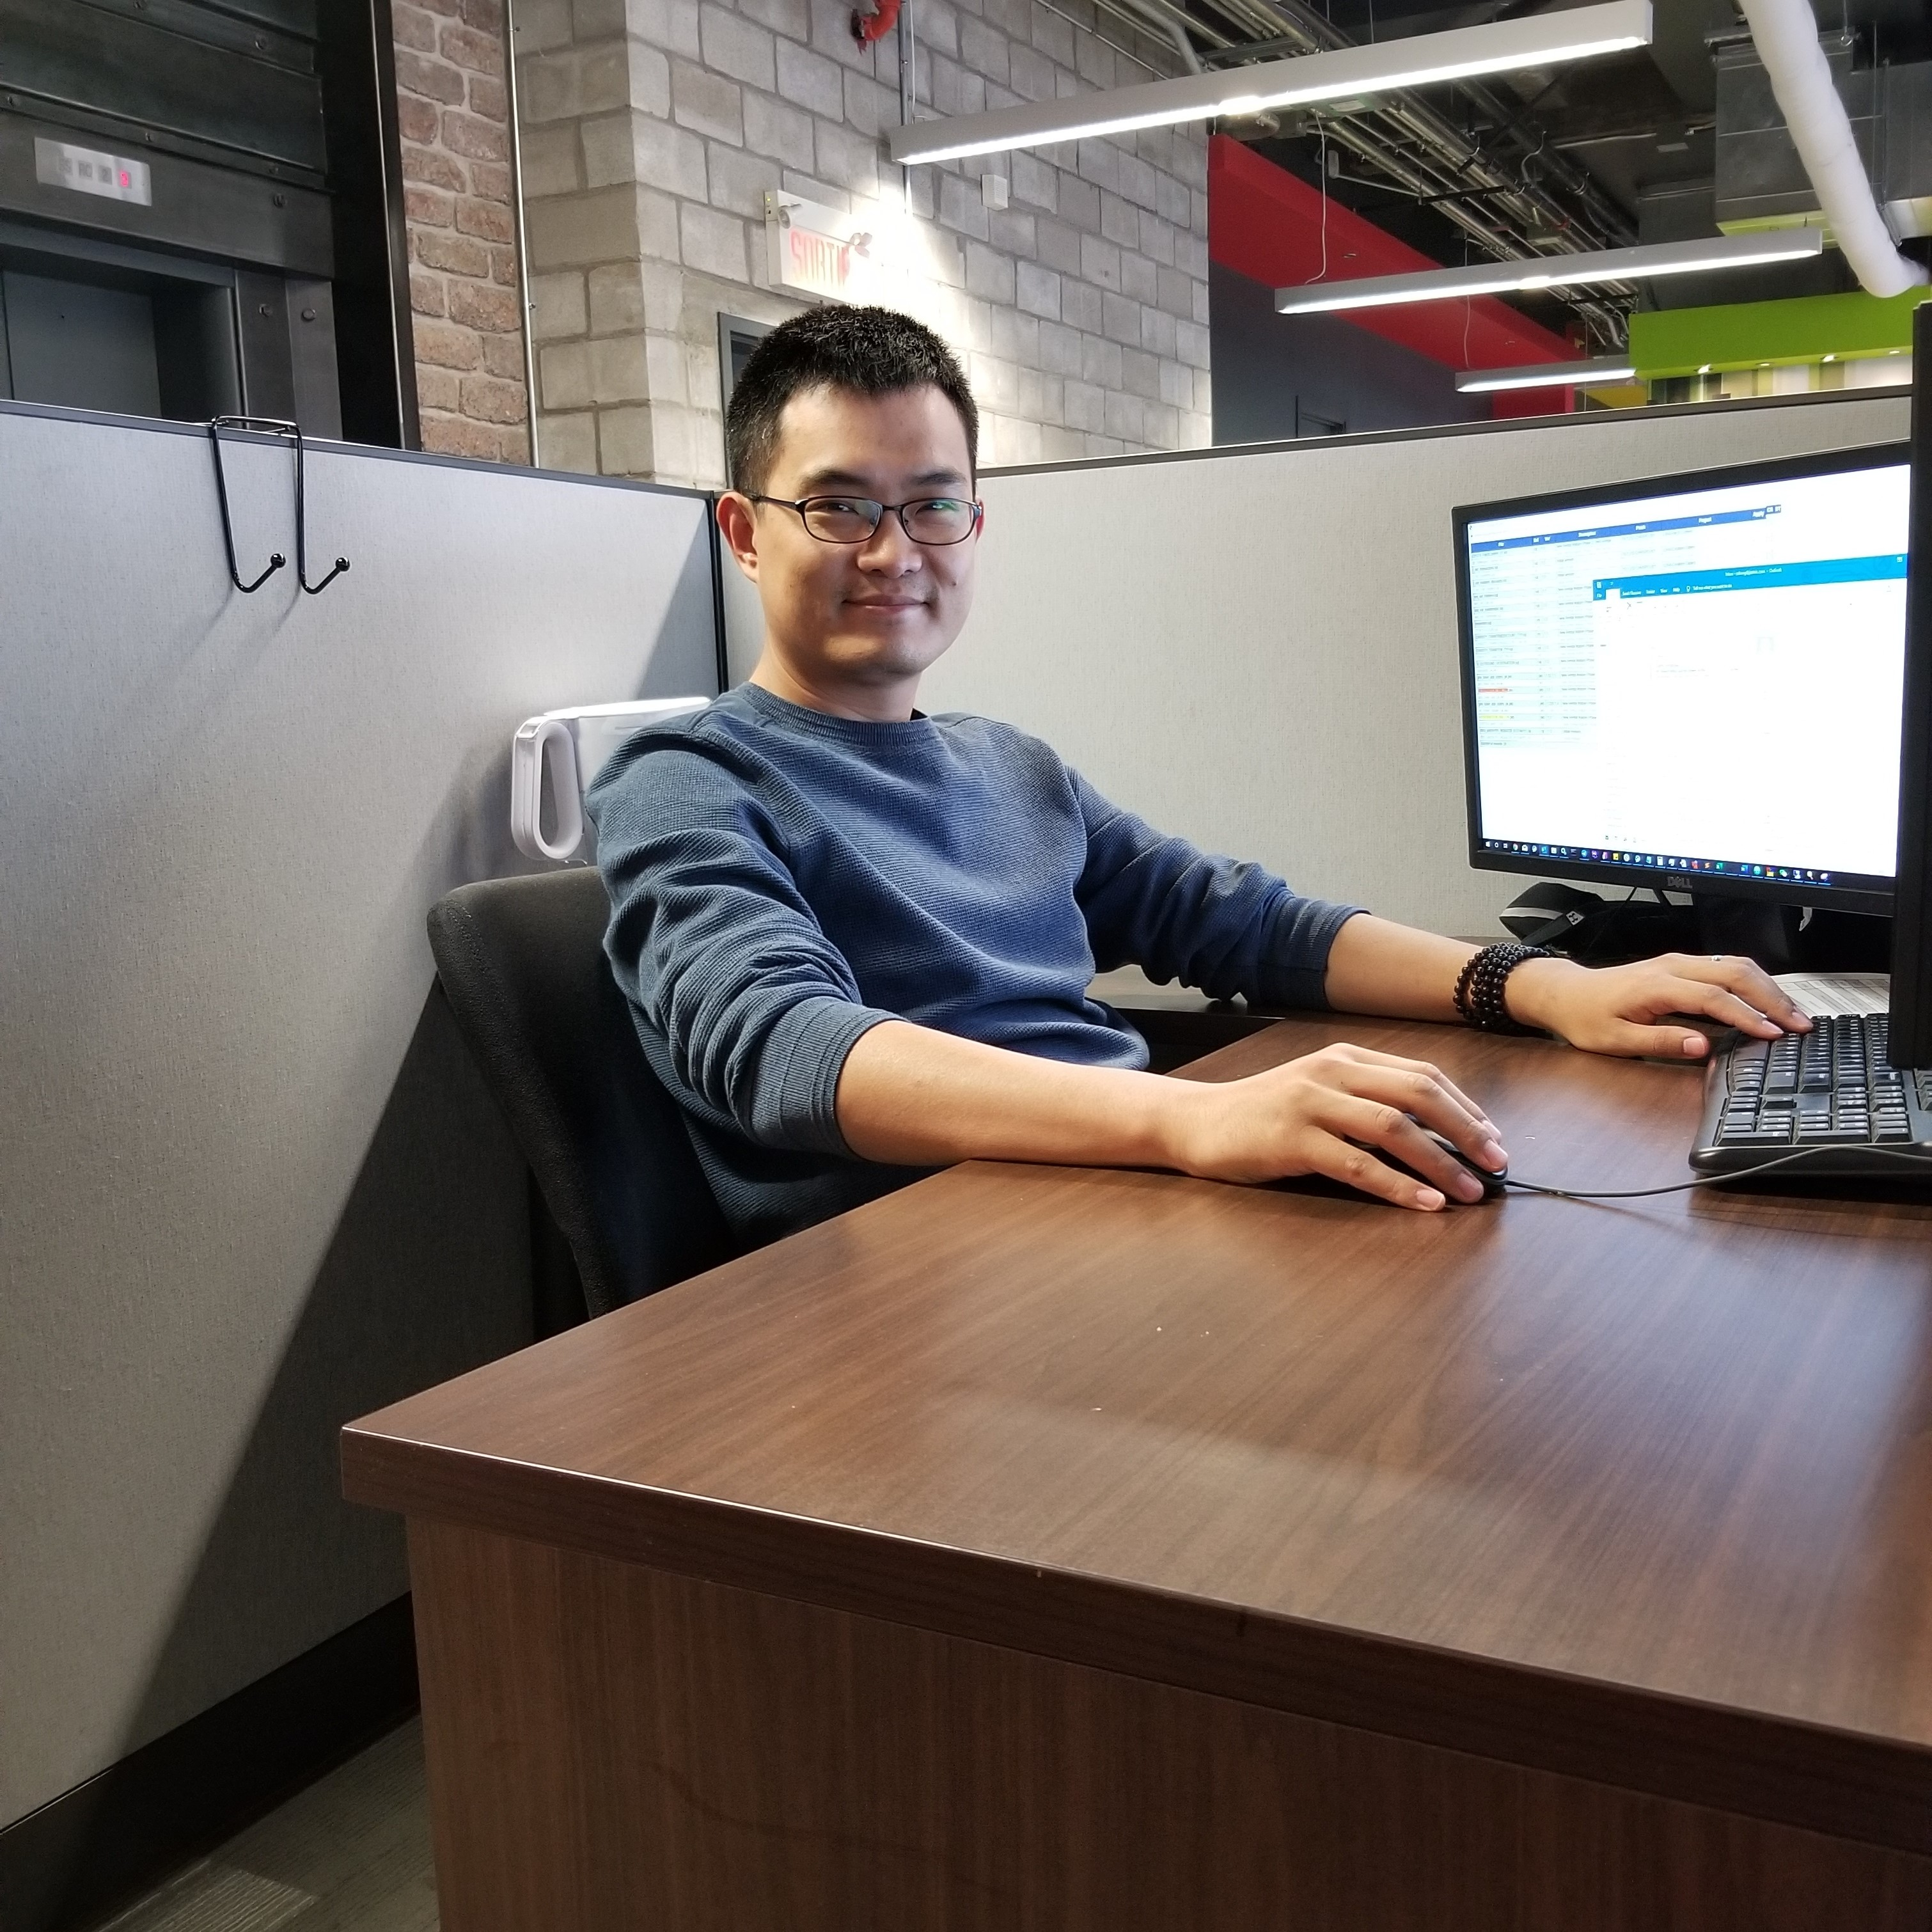 Meet Chao: My experience in Herzing's programmer analyst program